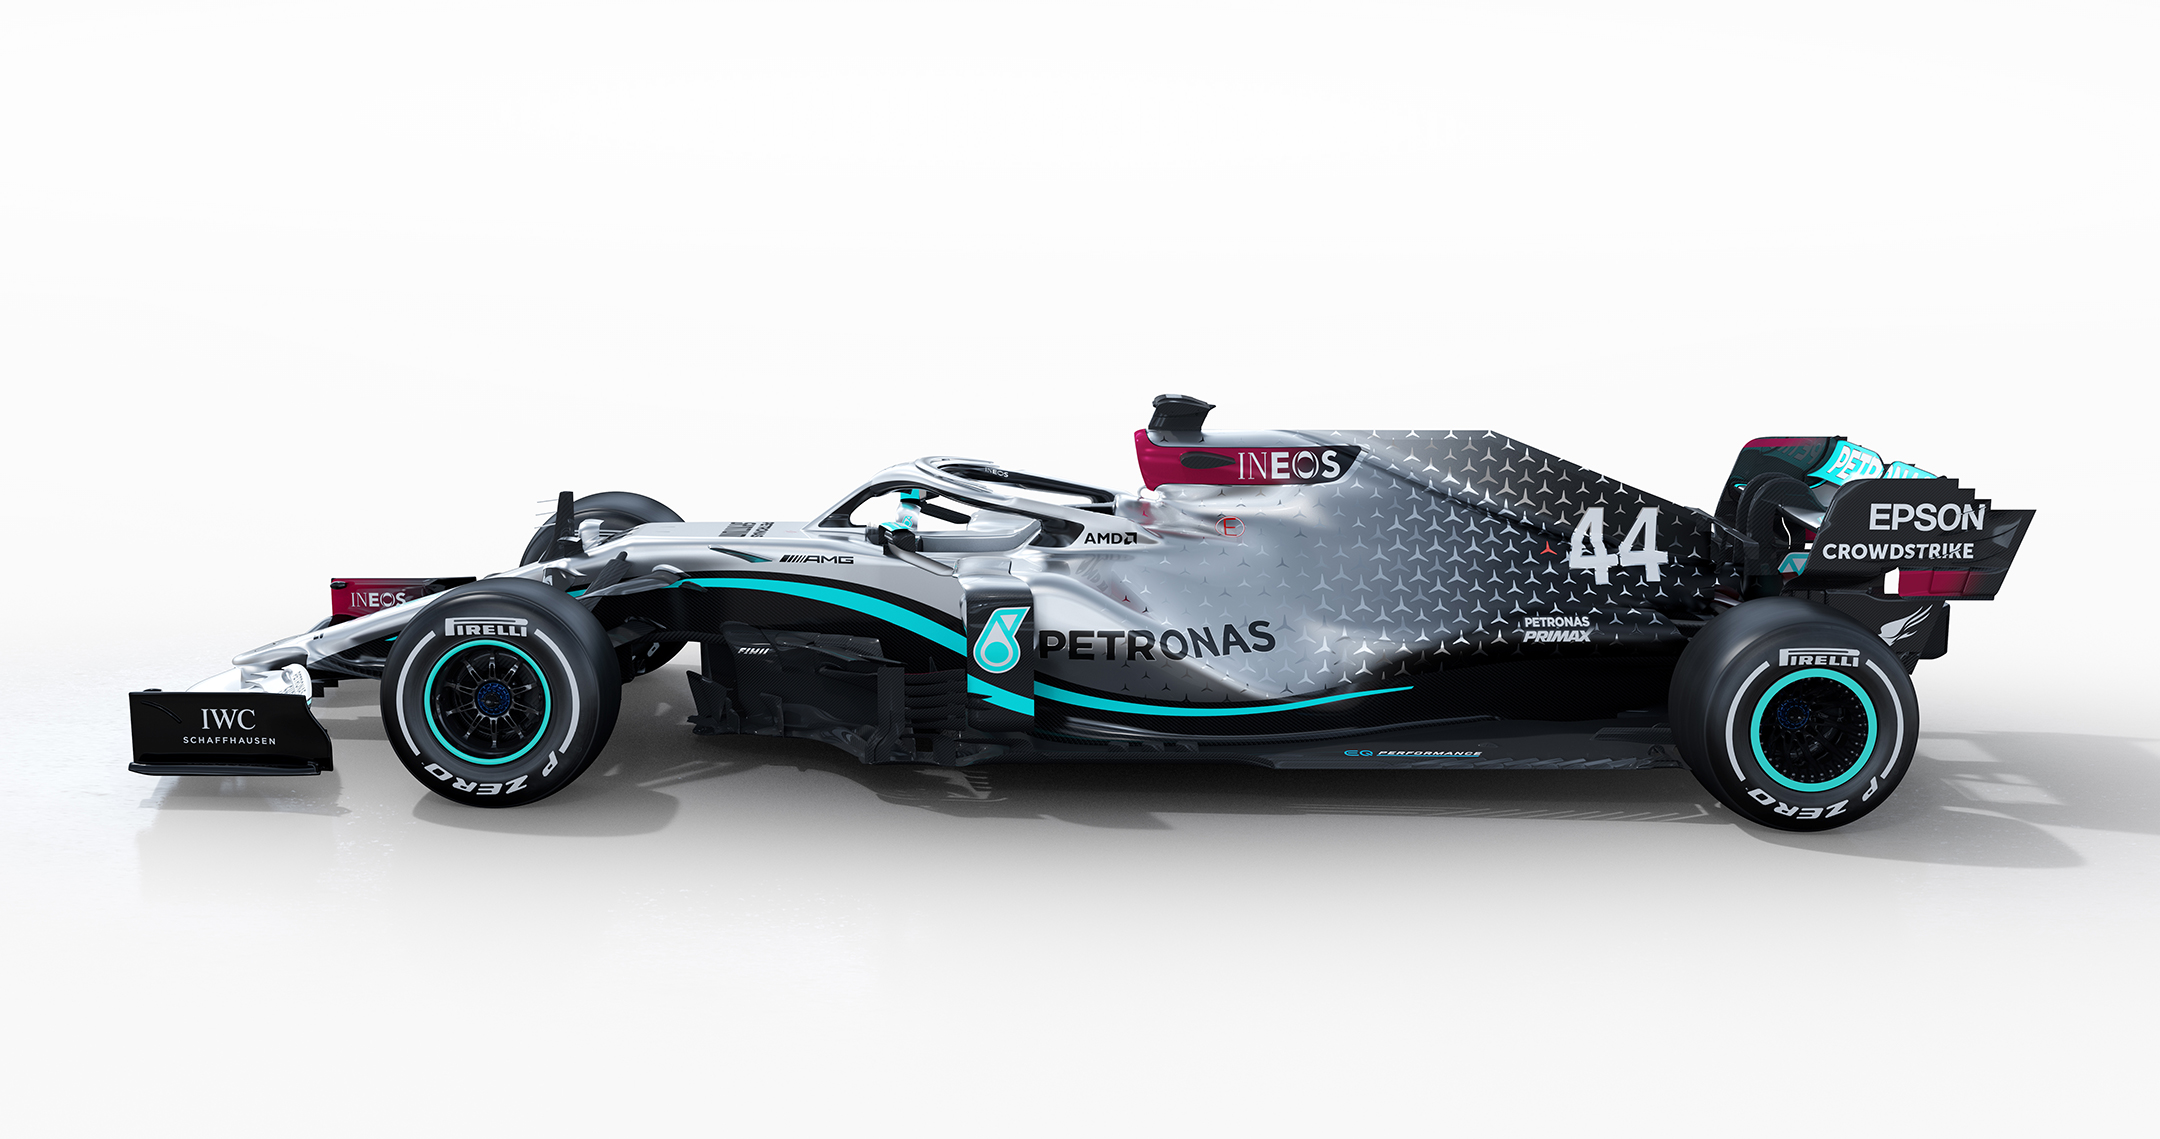 F1 - Mercedes-AMG - W11 - 2020 - side-face